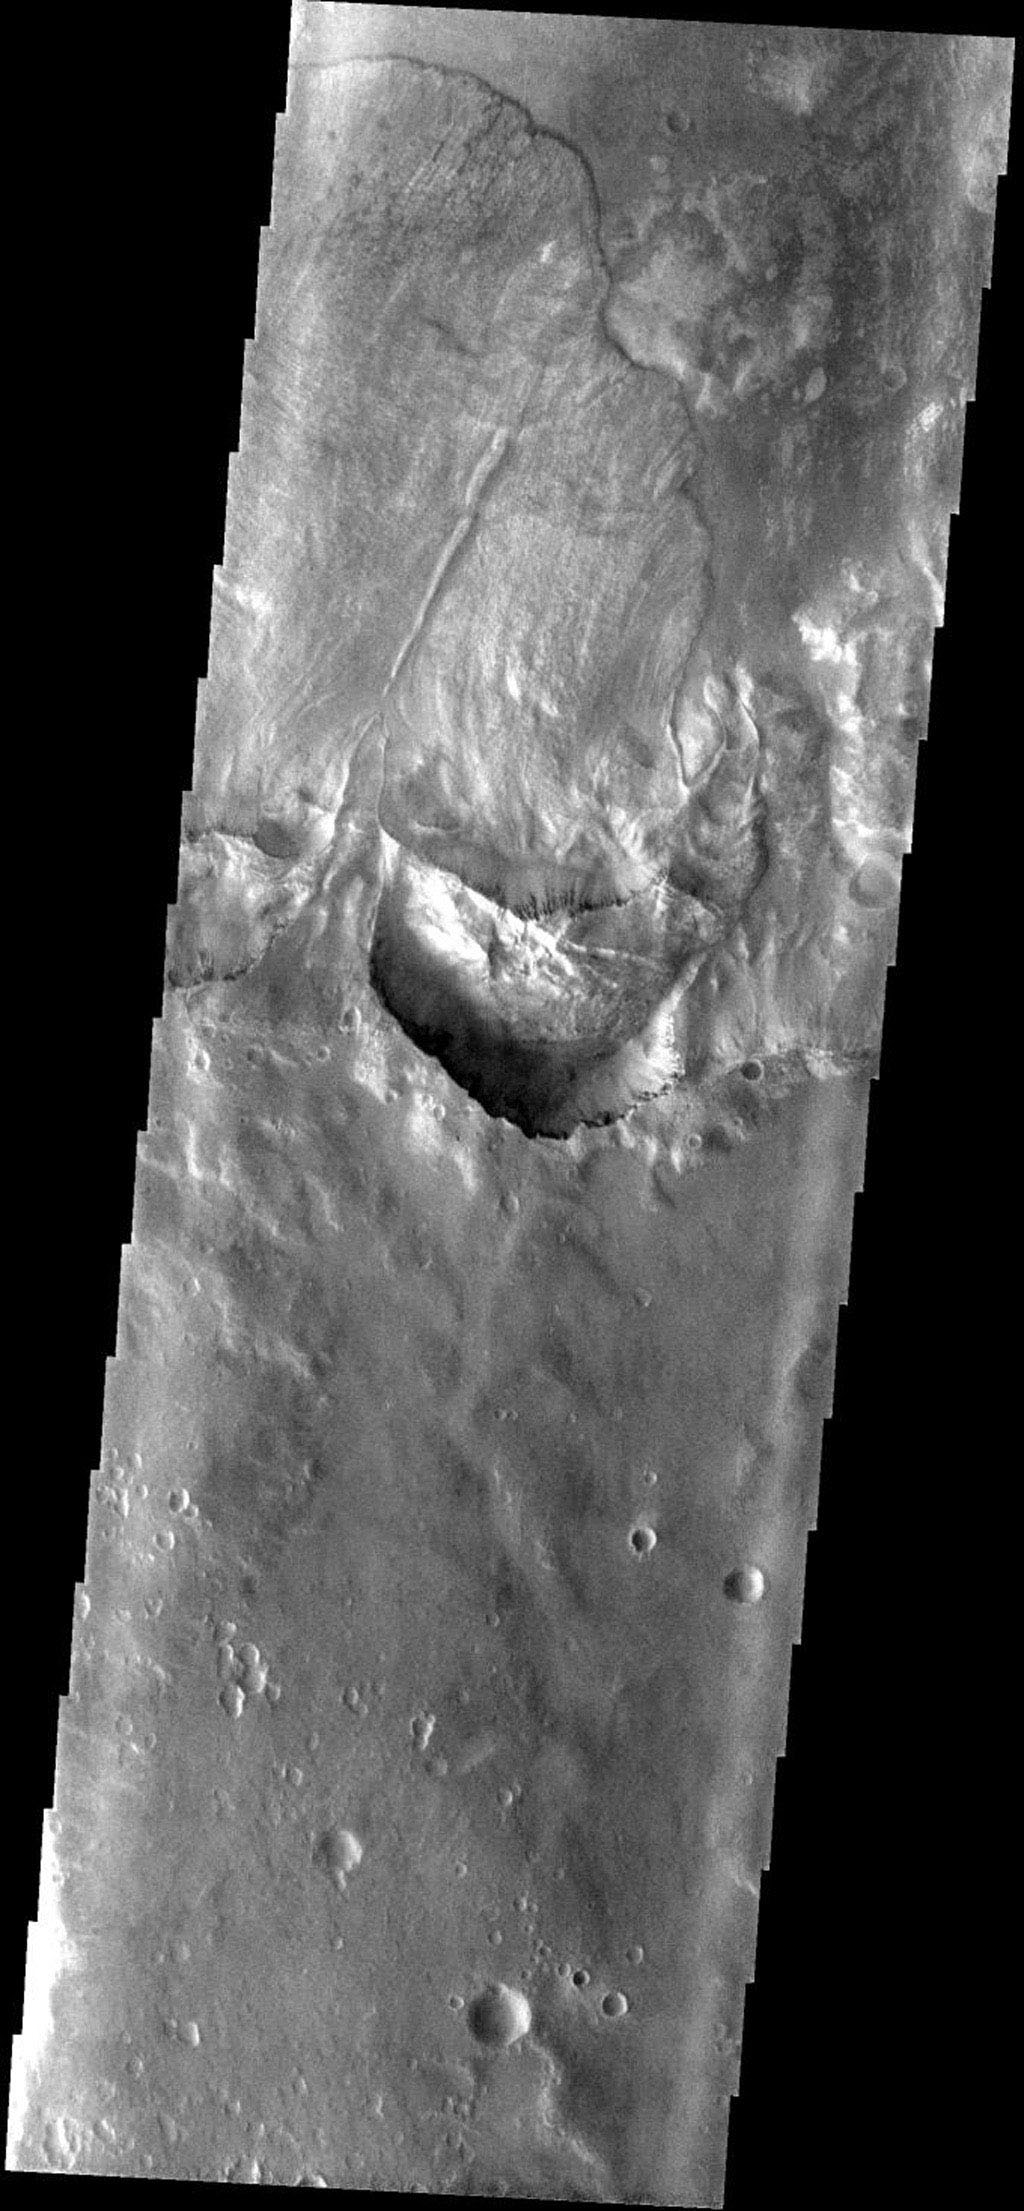 This image from NASA's Mars Odyssey spacecraft shows a large landslide on Mars, located within an unnamed crater to the WSW of Holden Crater.